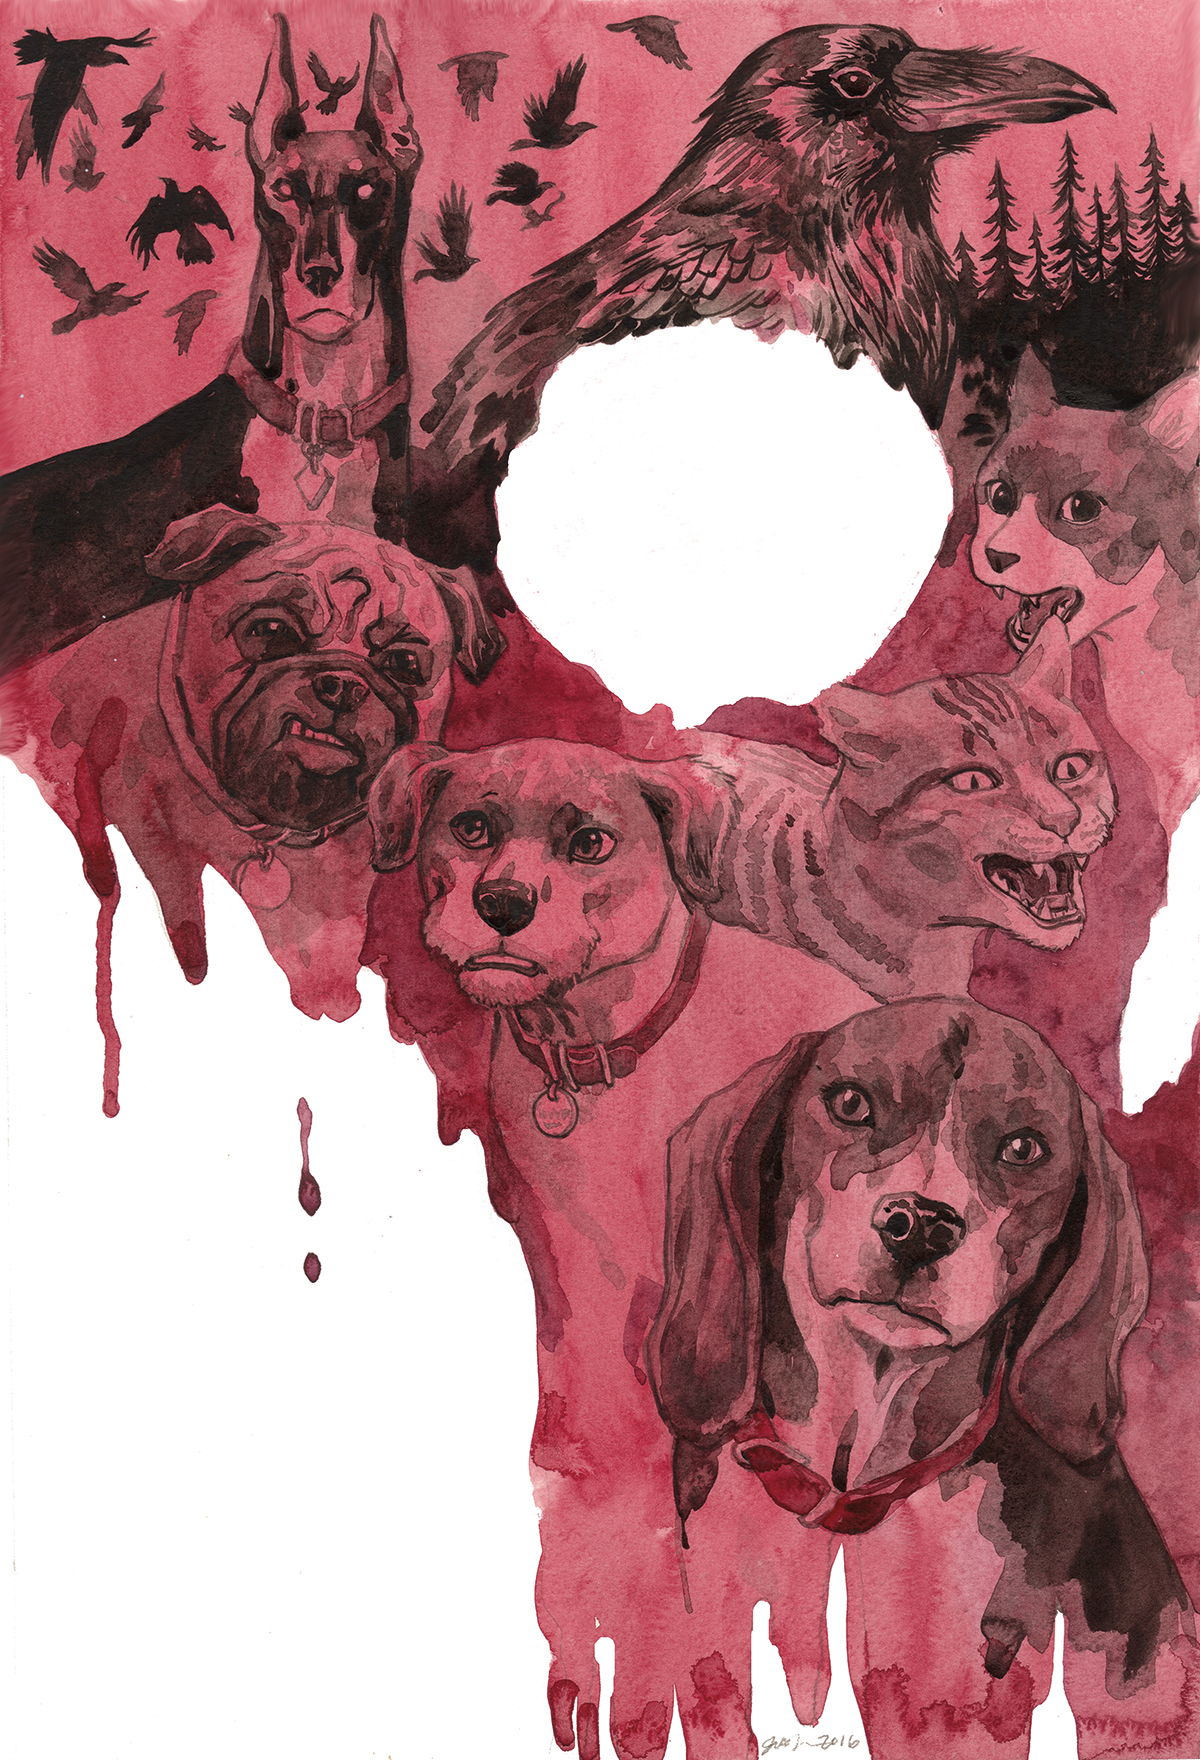 BEASTS OF BURDEN Returns With A Chilling New Tale 1